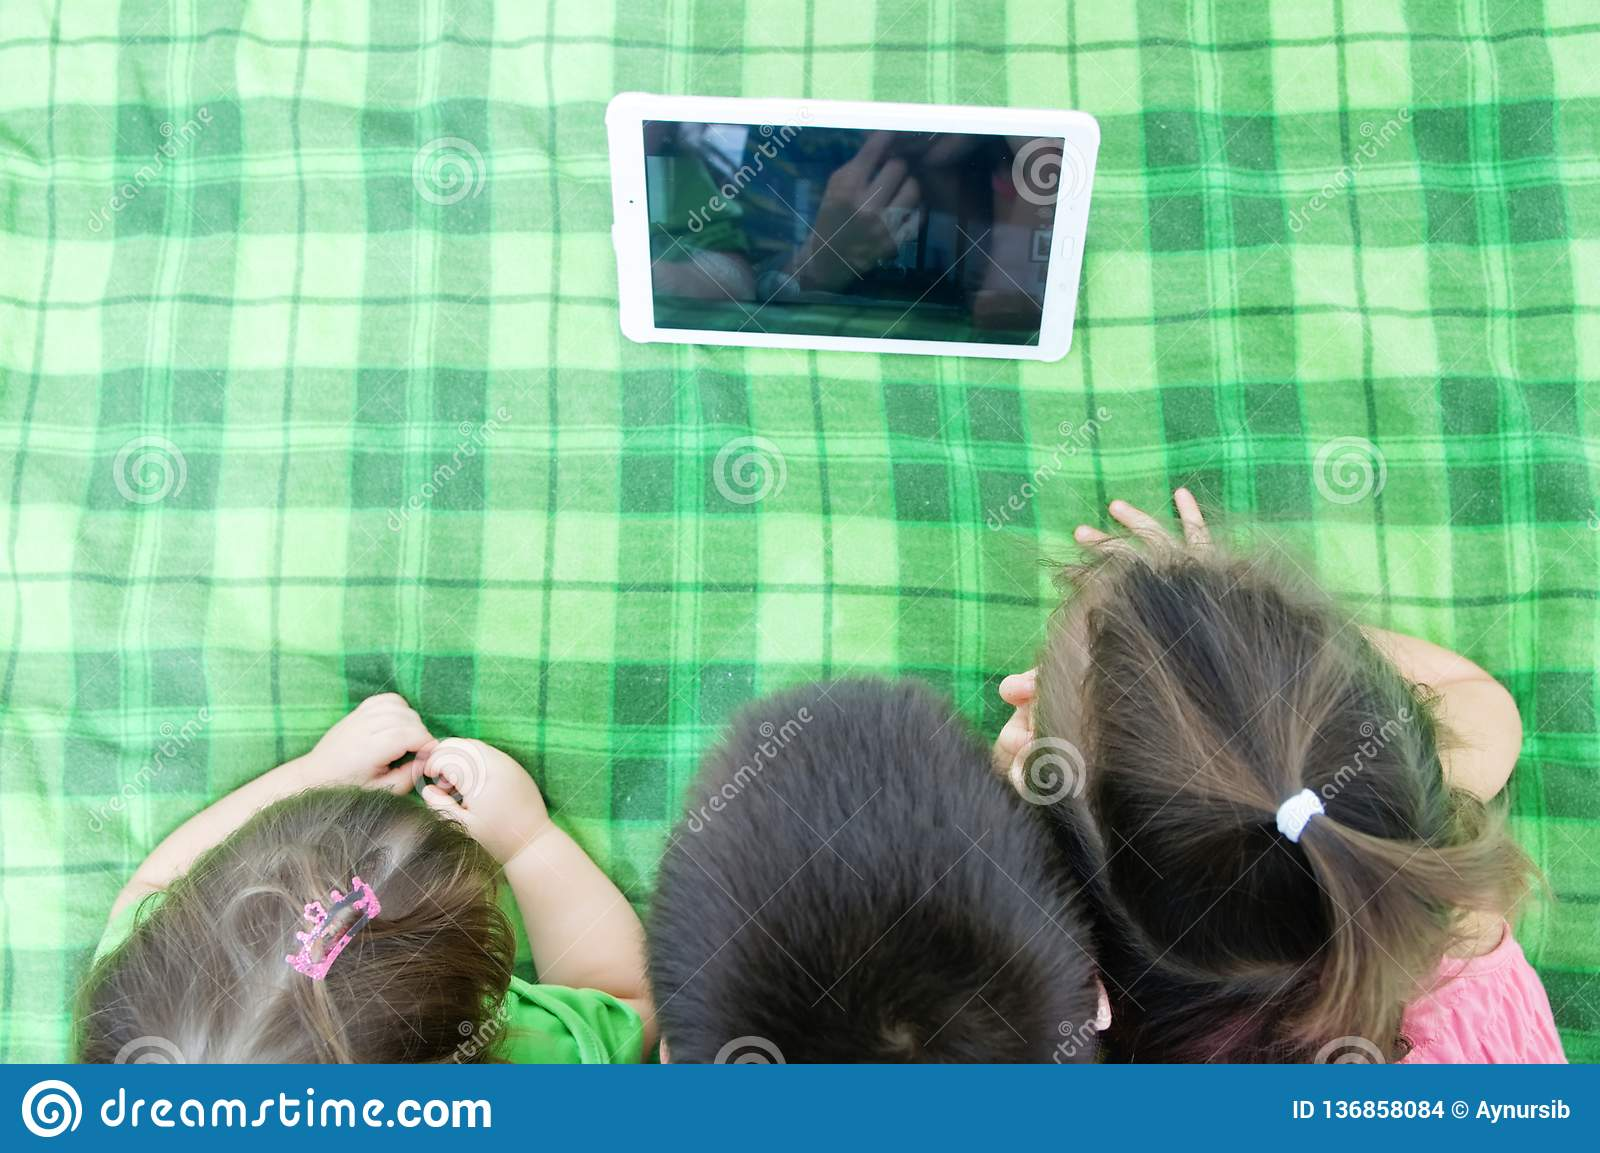 Children looking on pad lying on bed at home. Children time spending. Three kids using tablet